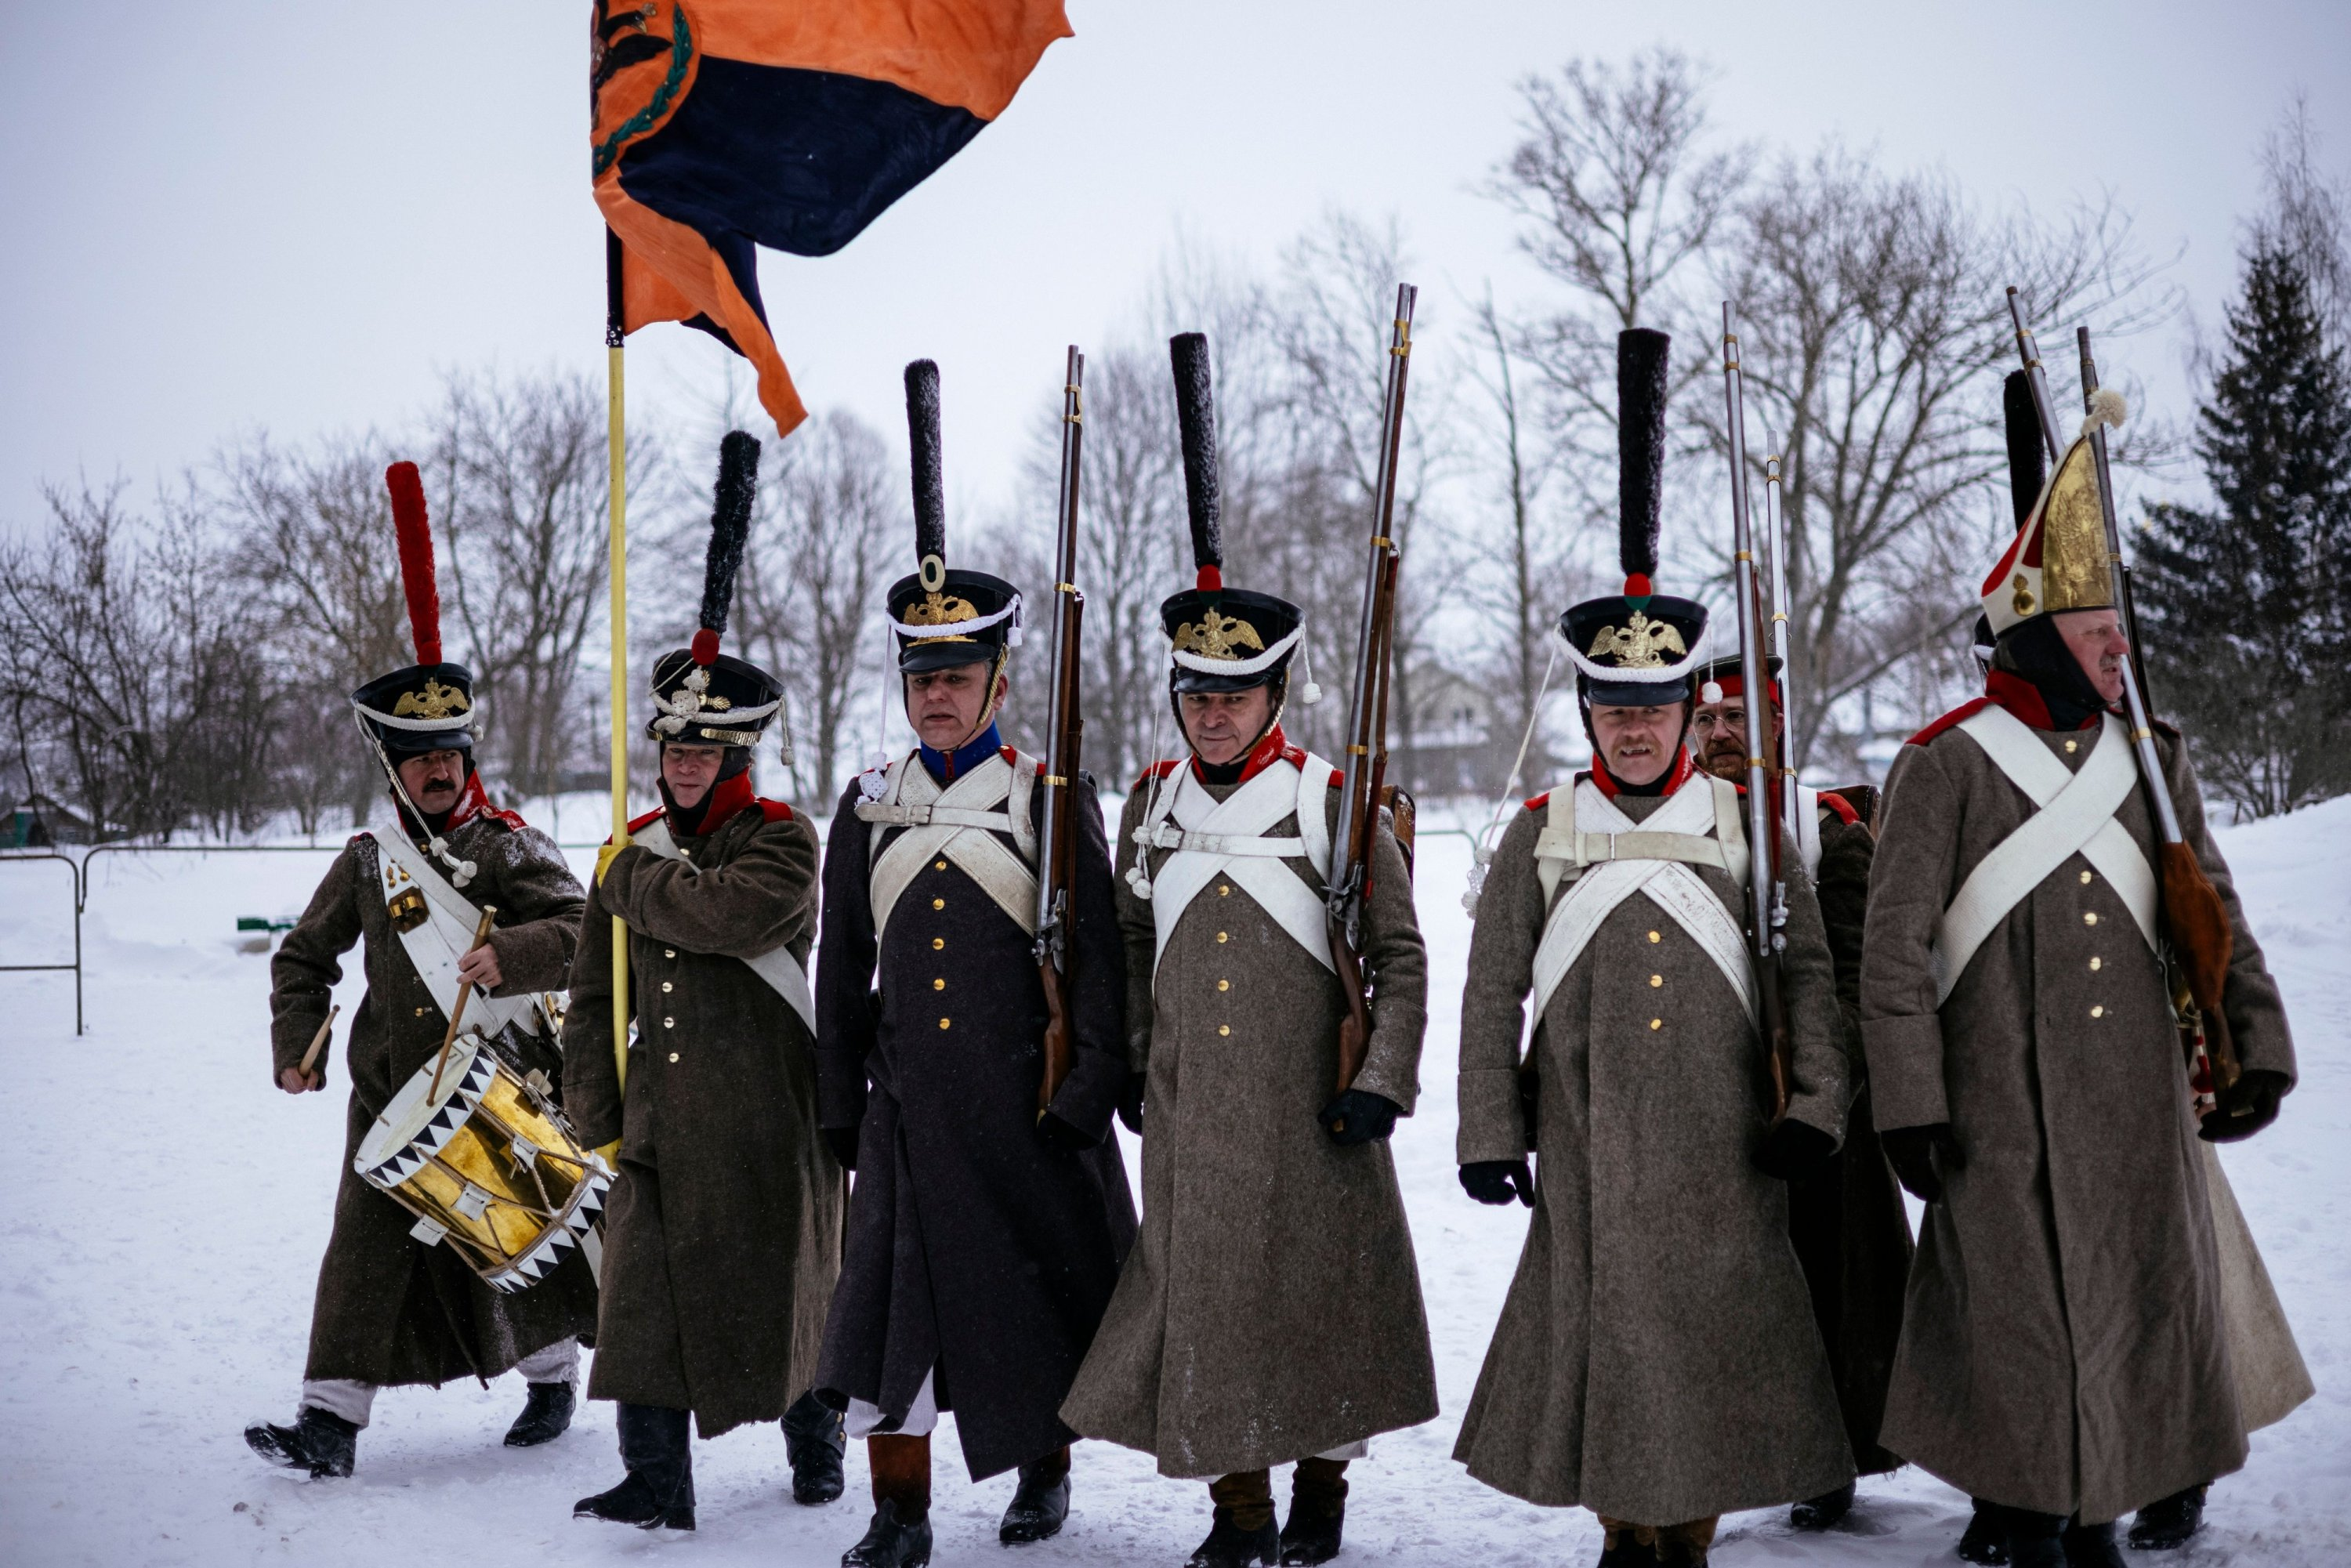 Reenactors in period uniforms attend the burial ceremony of Russian and French soldiers in the western town of Vyazma on Feb. 13, 2021. (AFP)